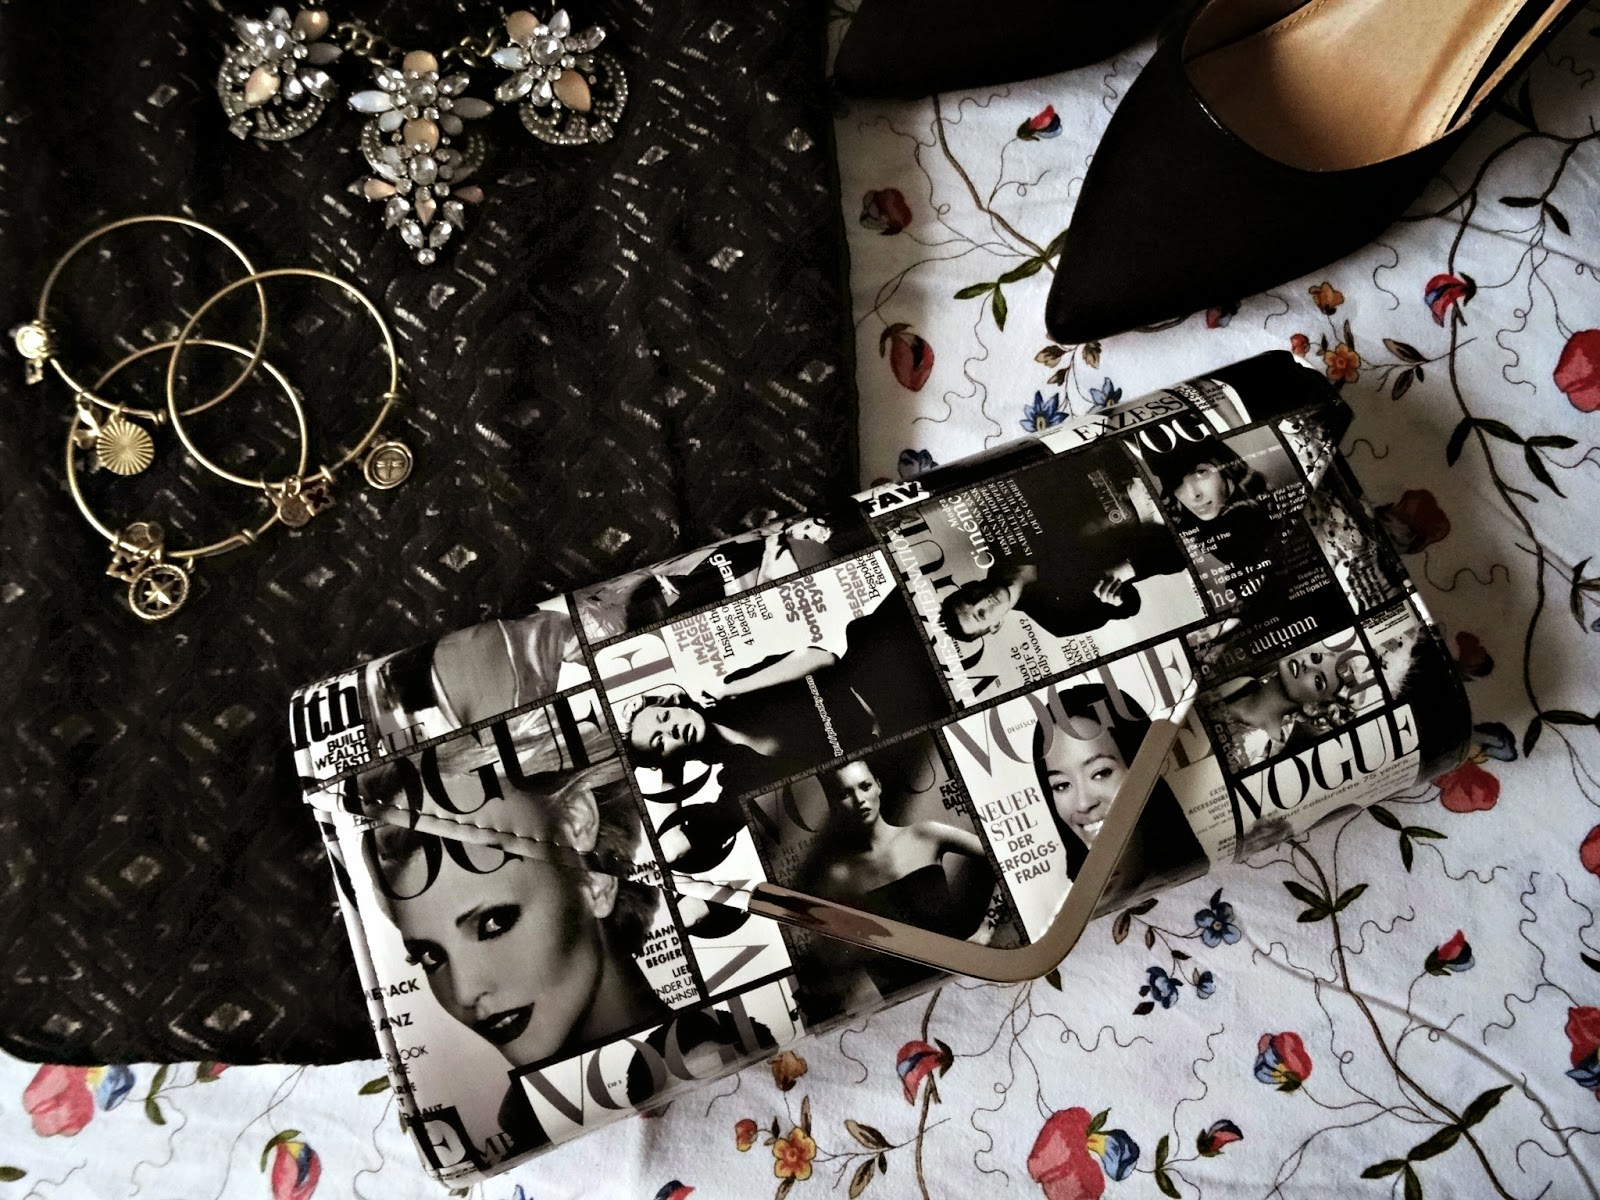 Magazine Clutch with Vogue Covers